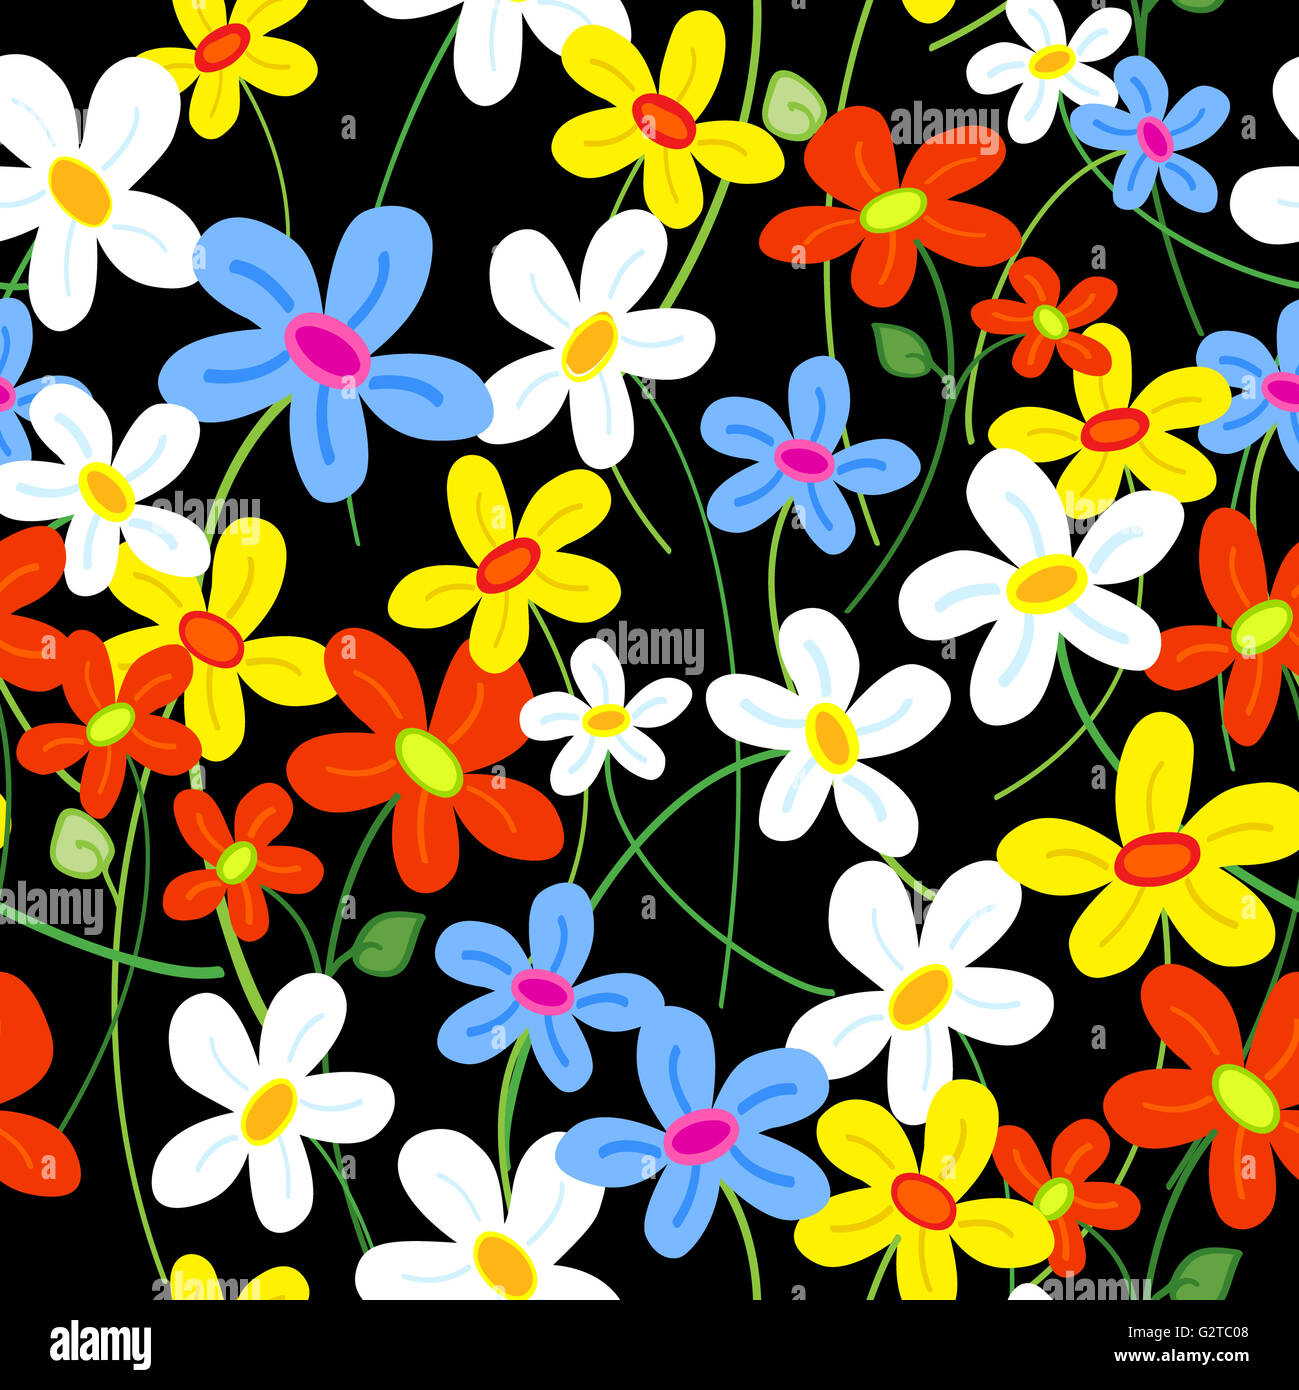 Seamless Cute Busy Daisy Flower Pattern Over Black Stock Photo